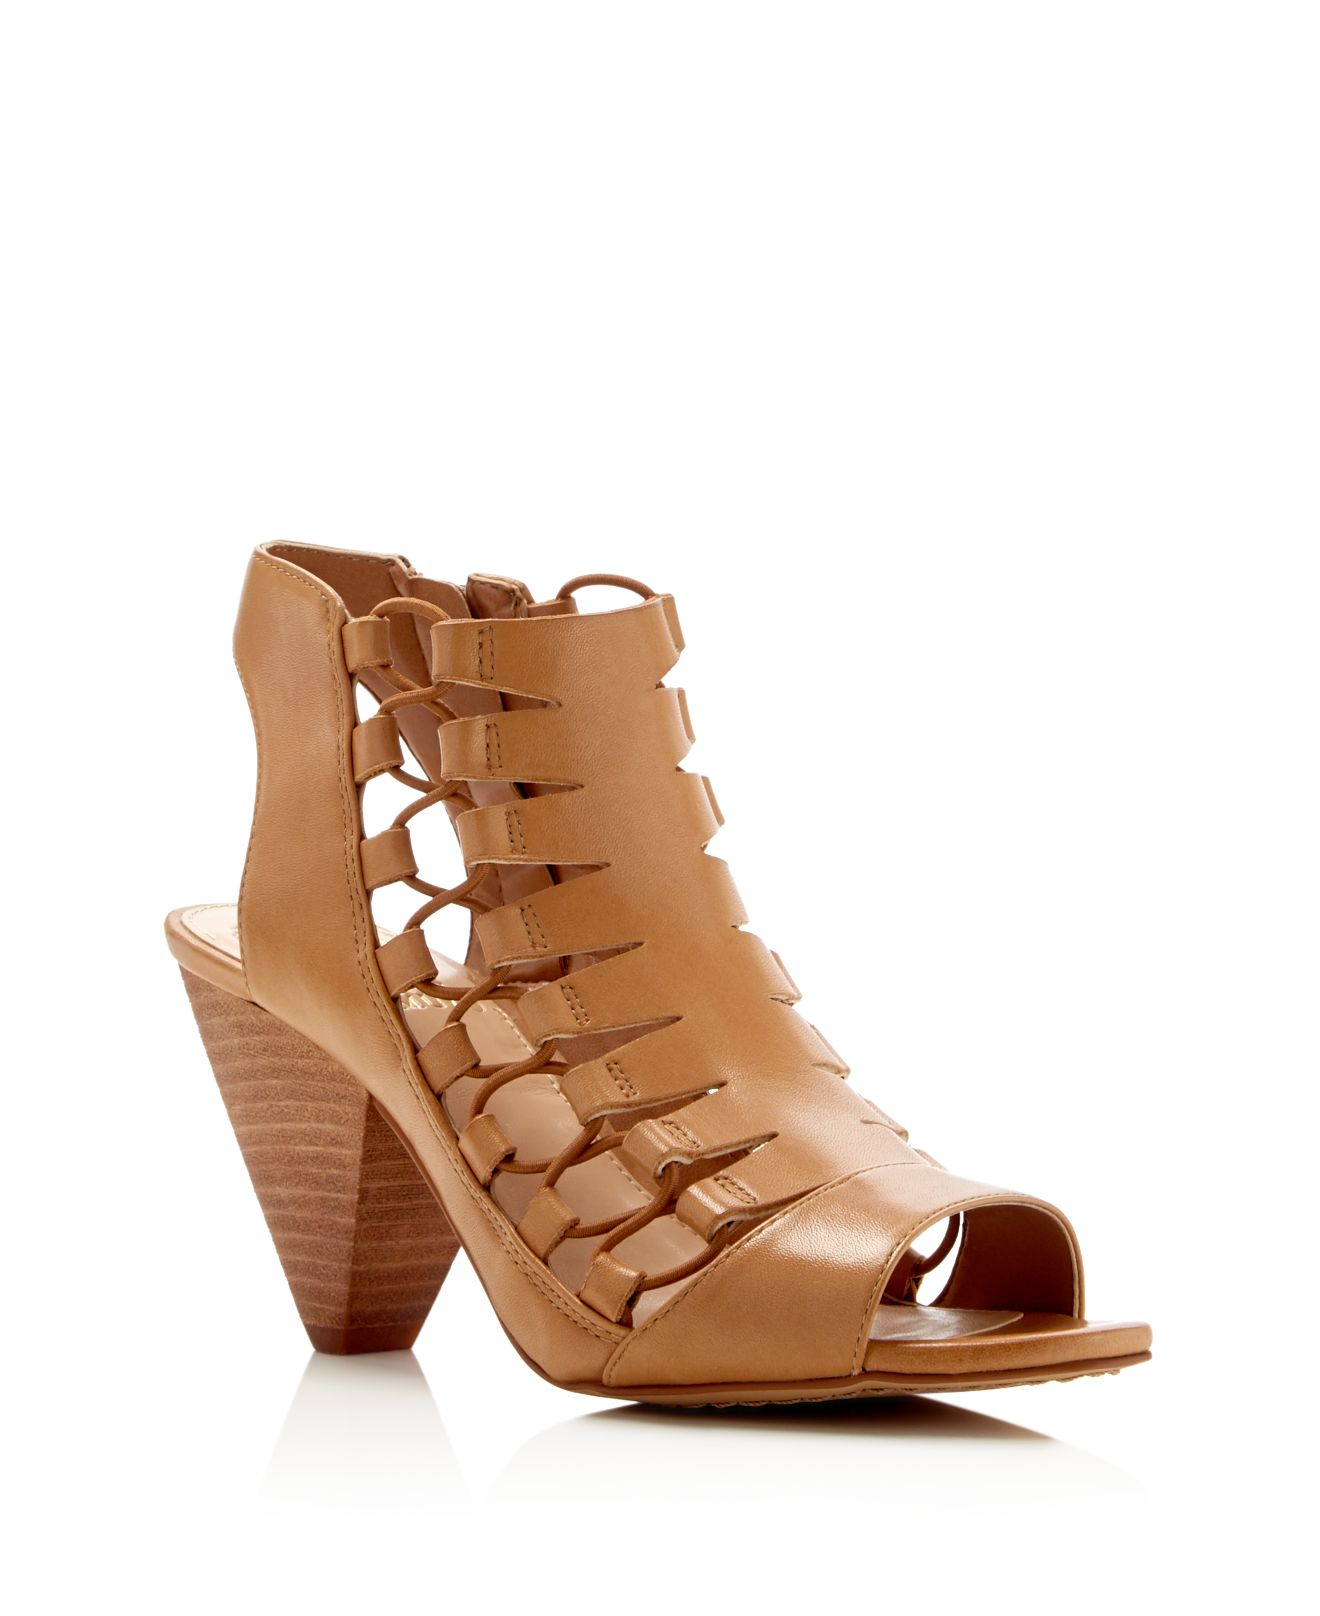 Vince Camuto Eliaz Caged Peep Toe Sandals In Beige Lyst